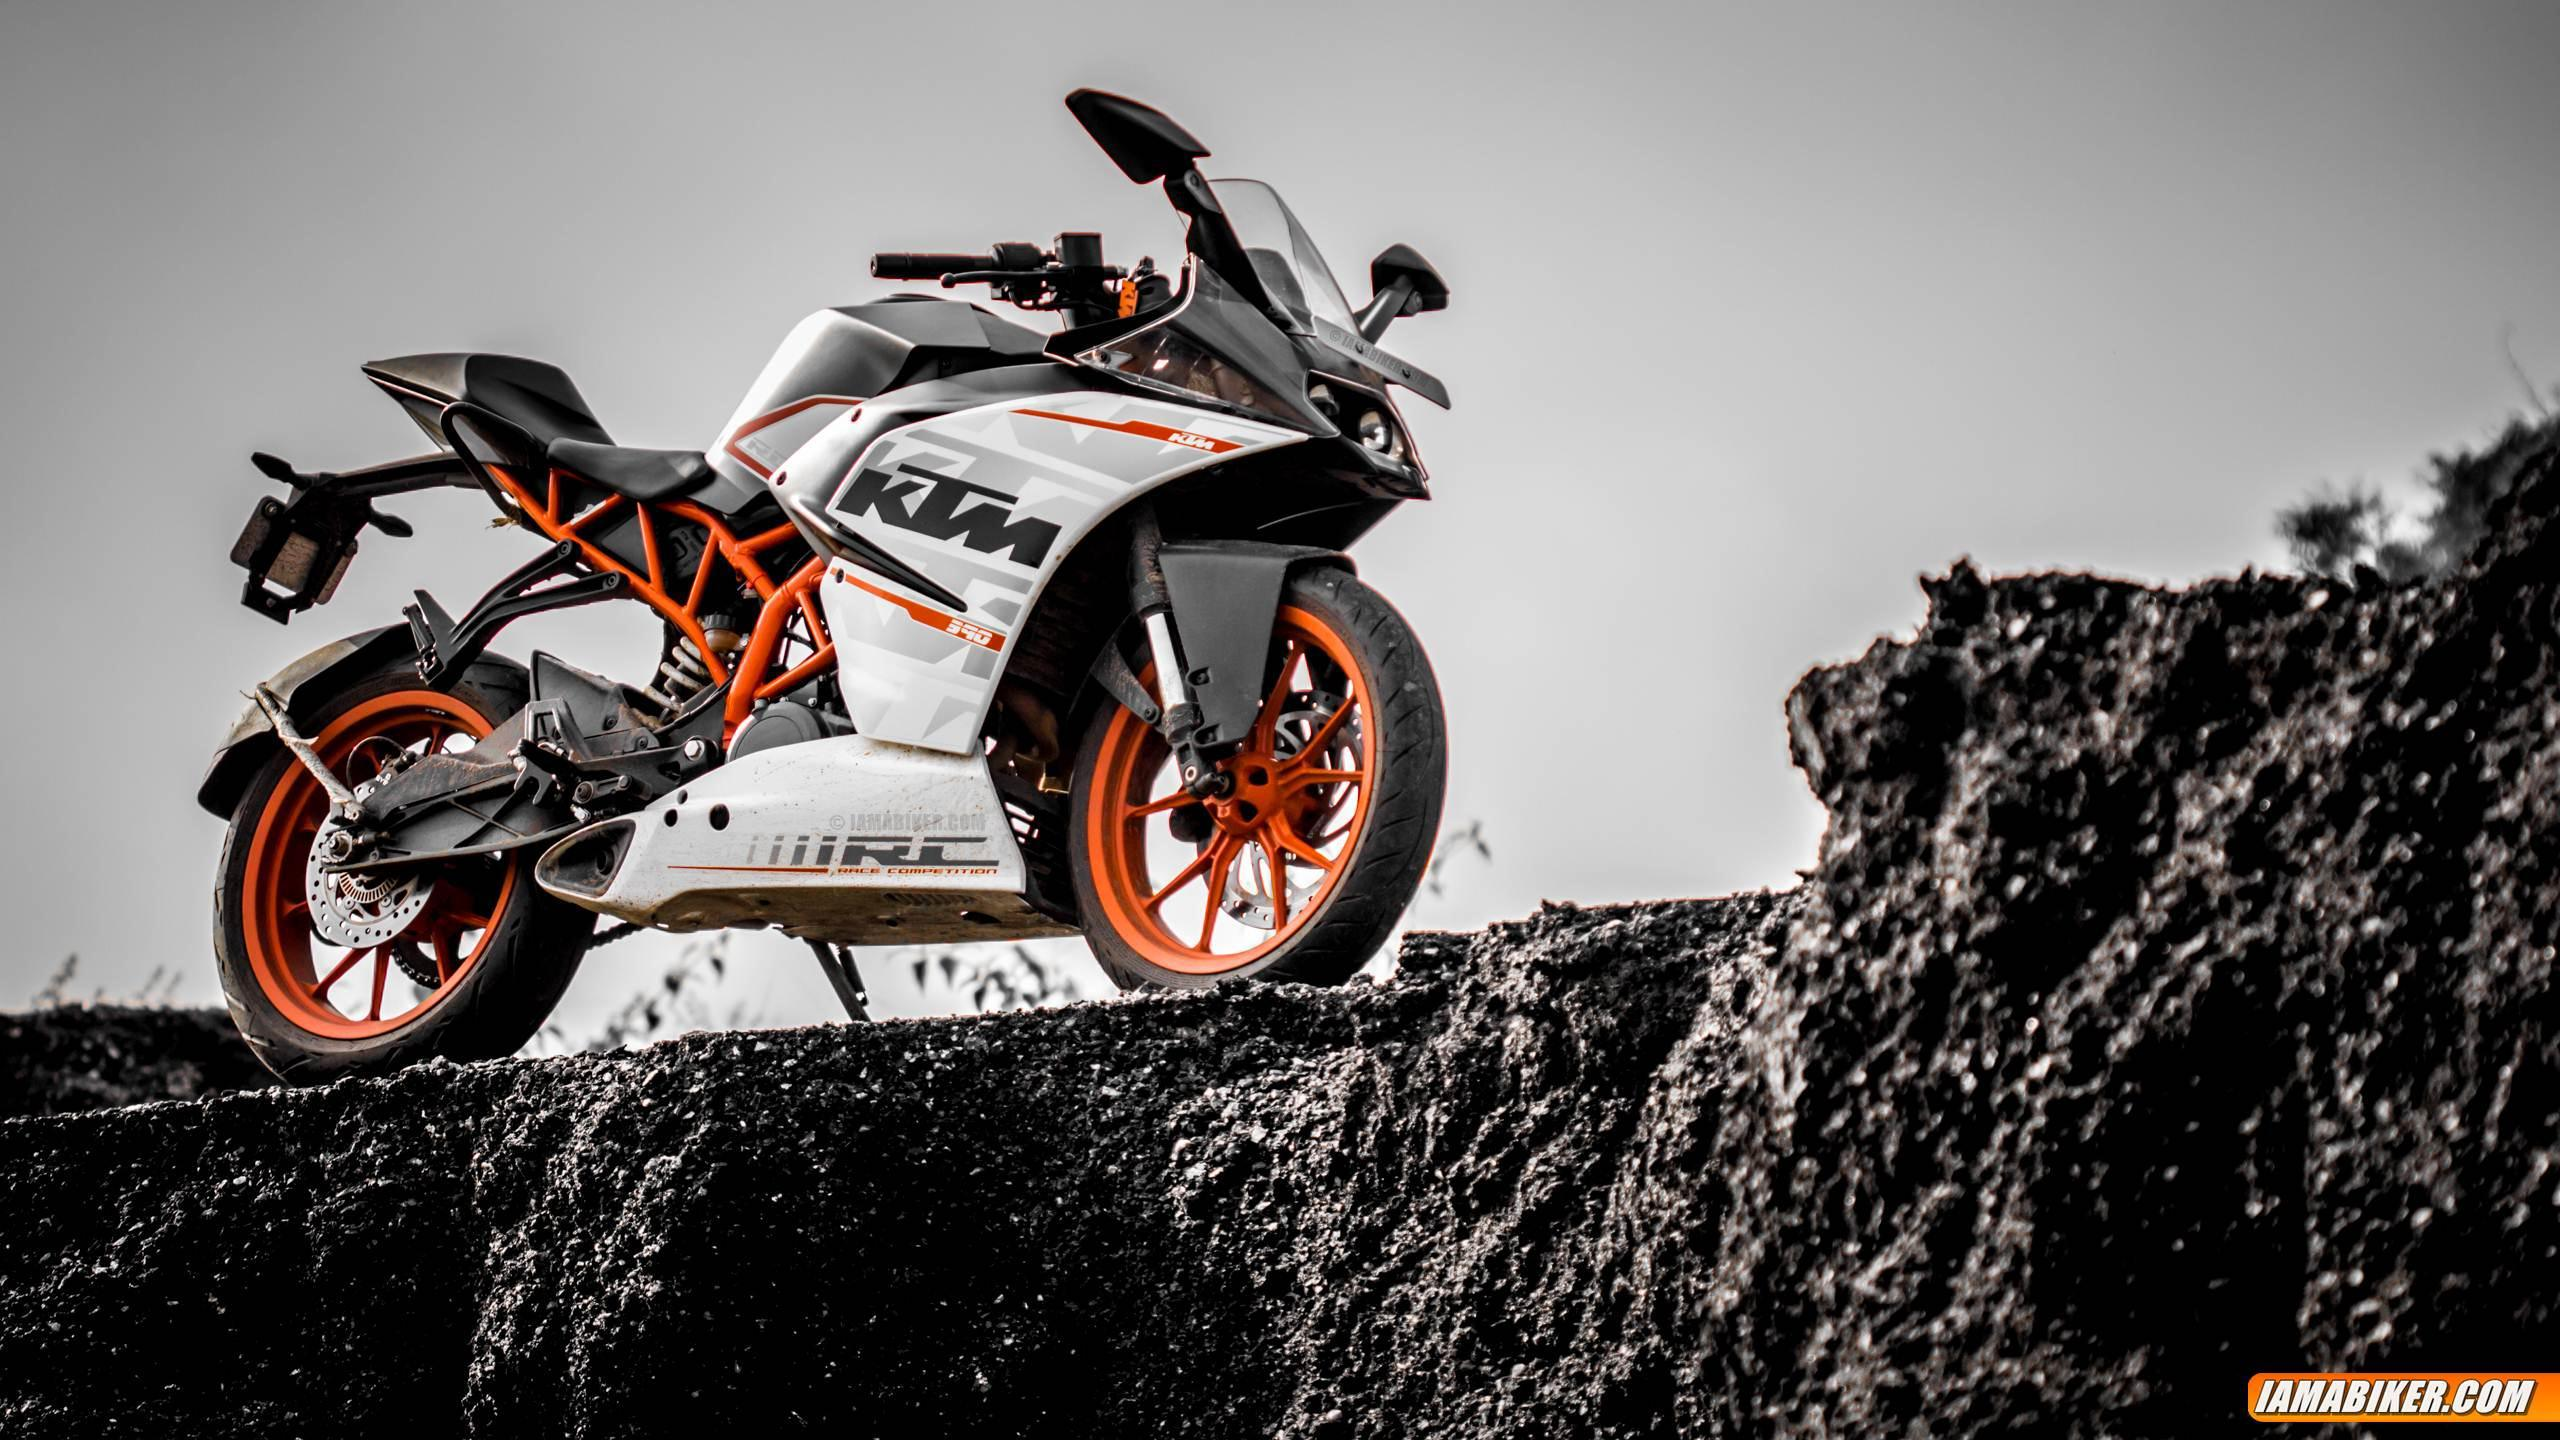 Background Images For Editing Hd Bike: KTM Exceeds €1 Billion In Revenue, Becomes The Fastest